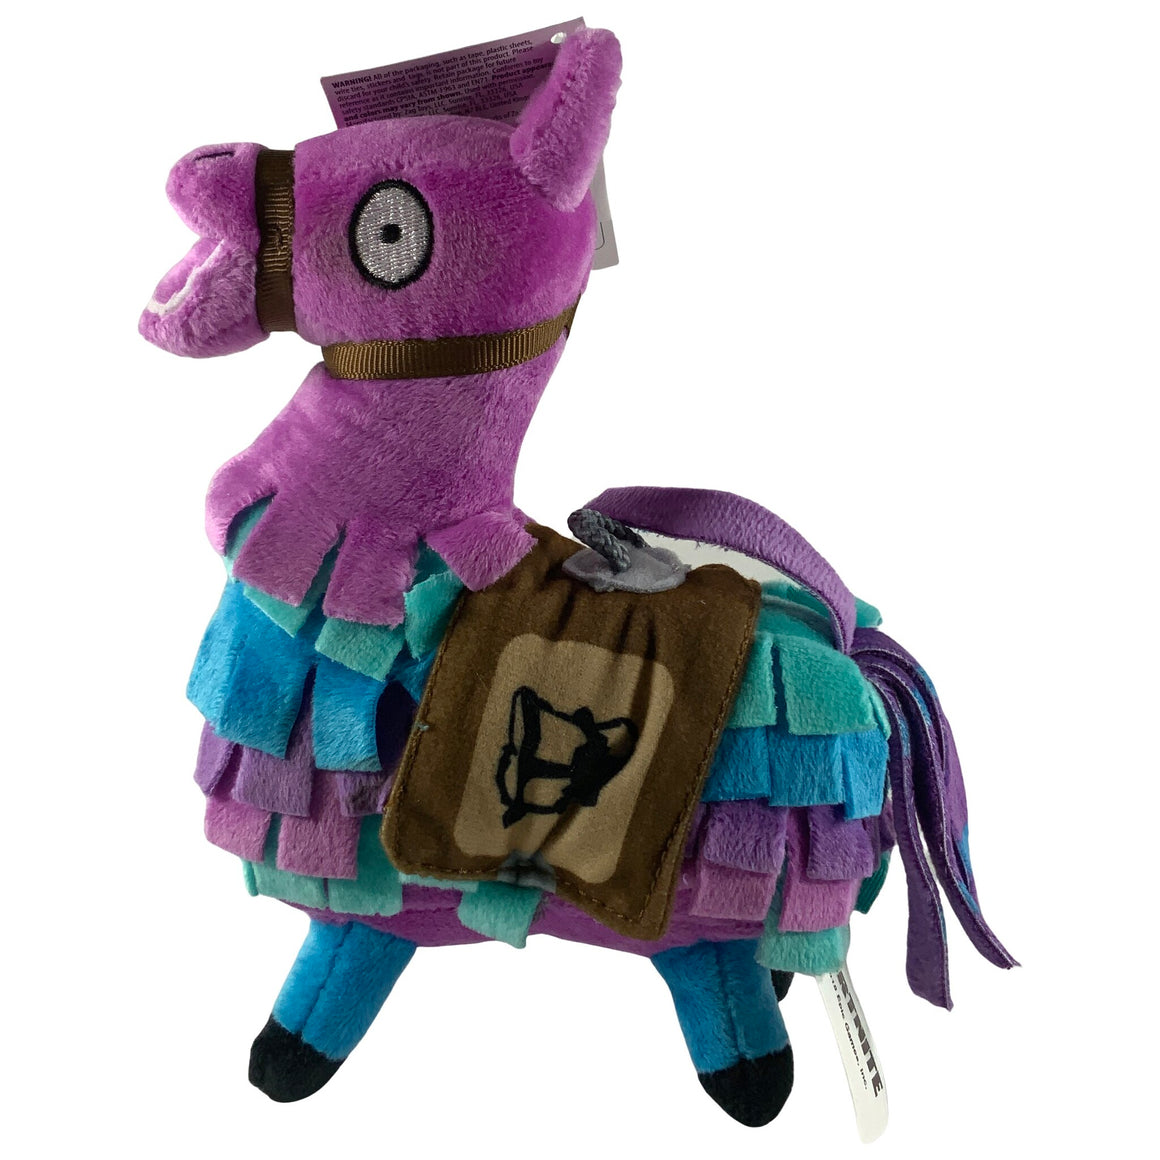 Epic Games - Fortnite Loot Llama